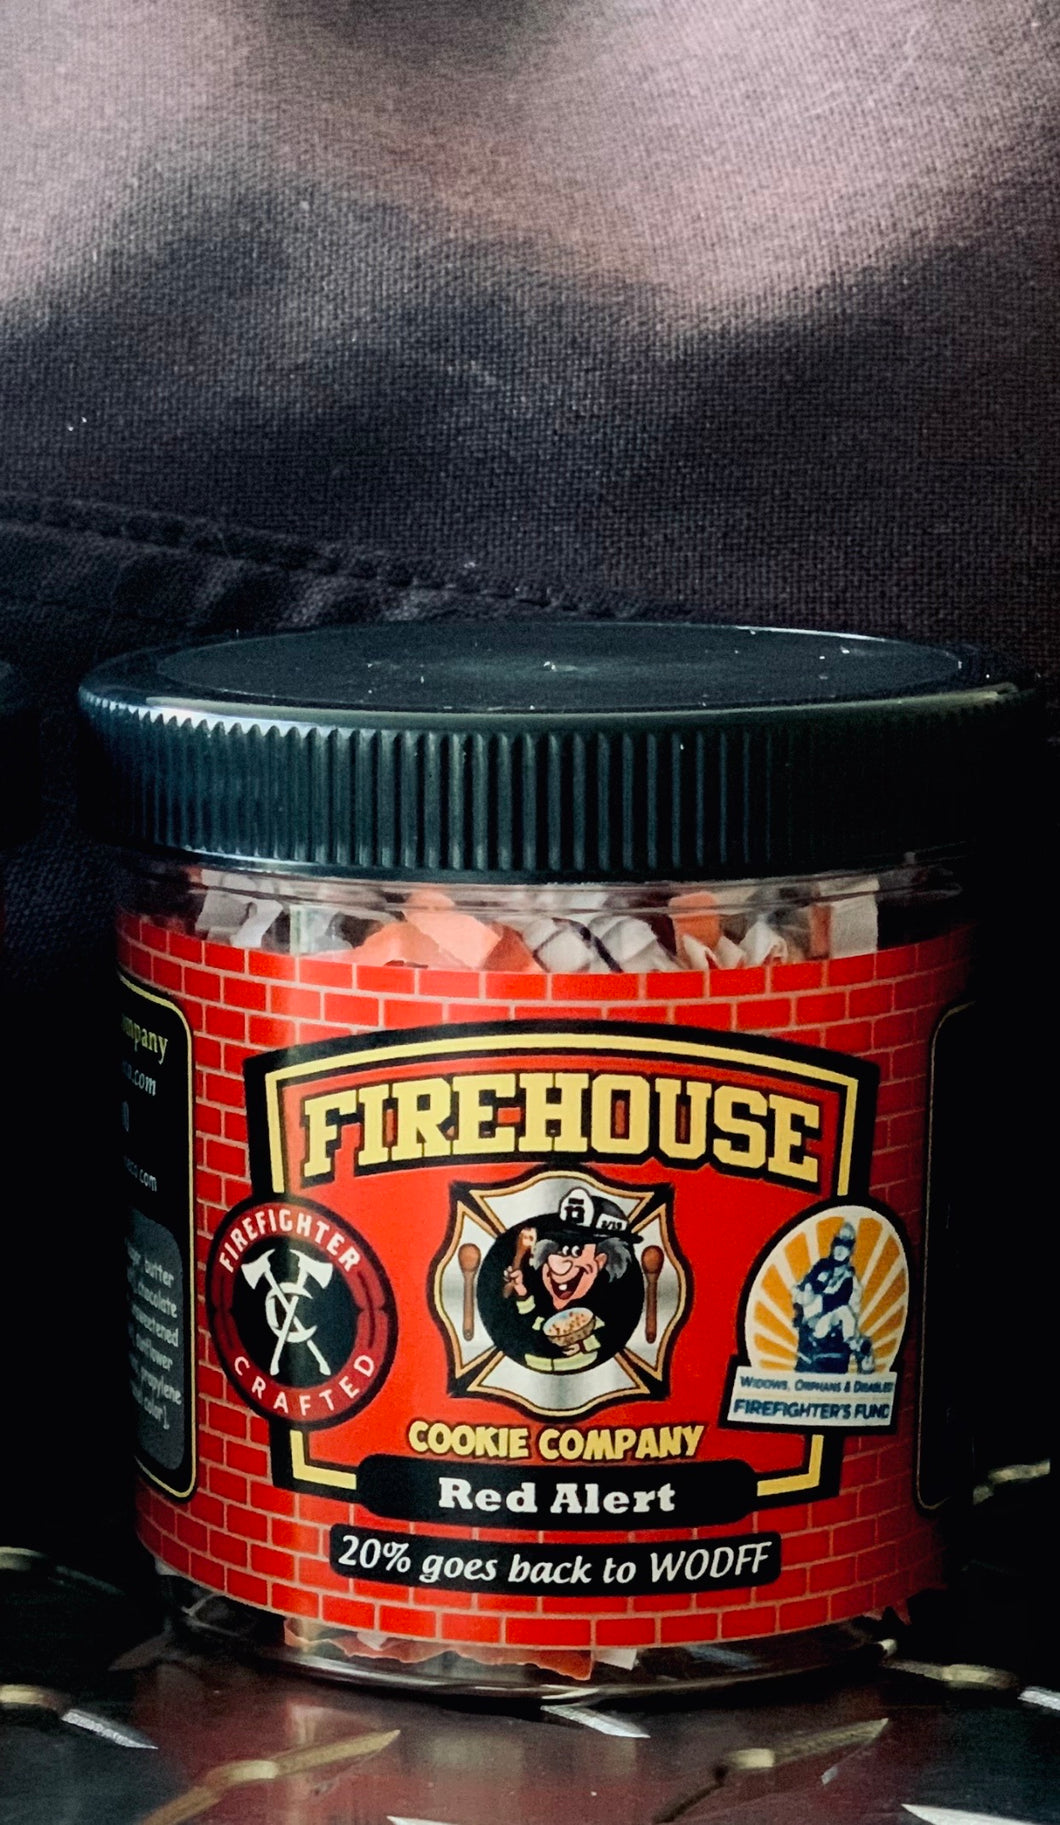 Red Alert - Firehouse Cookie Company